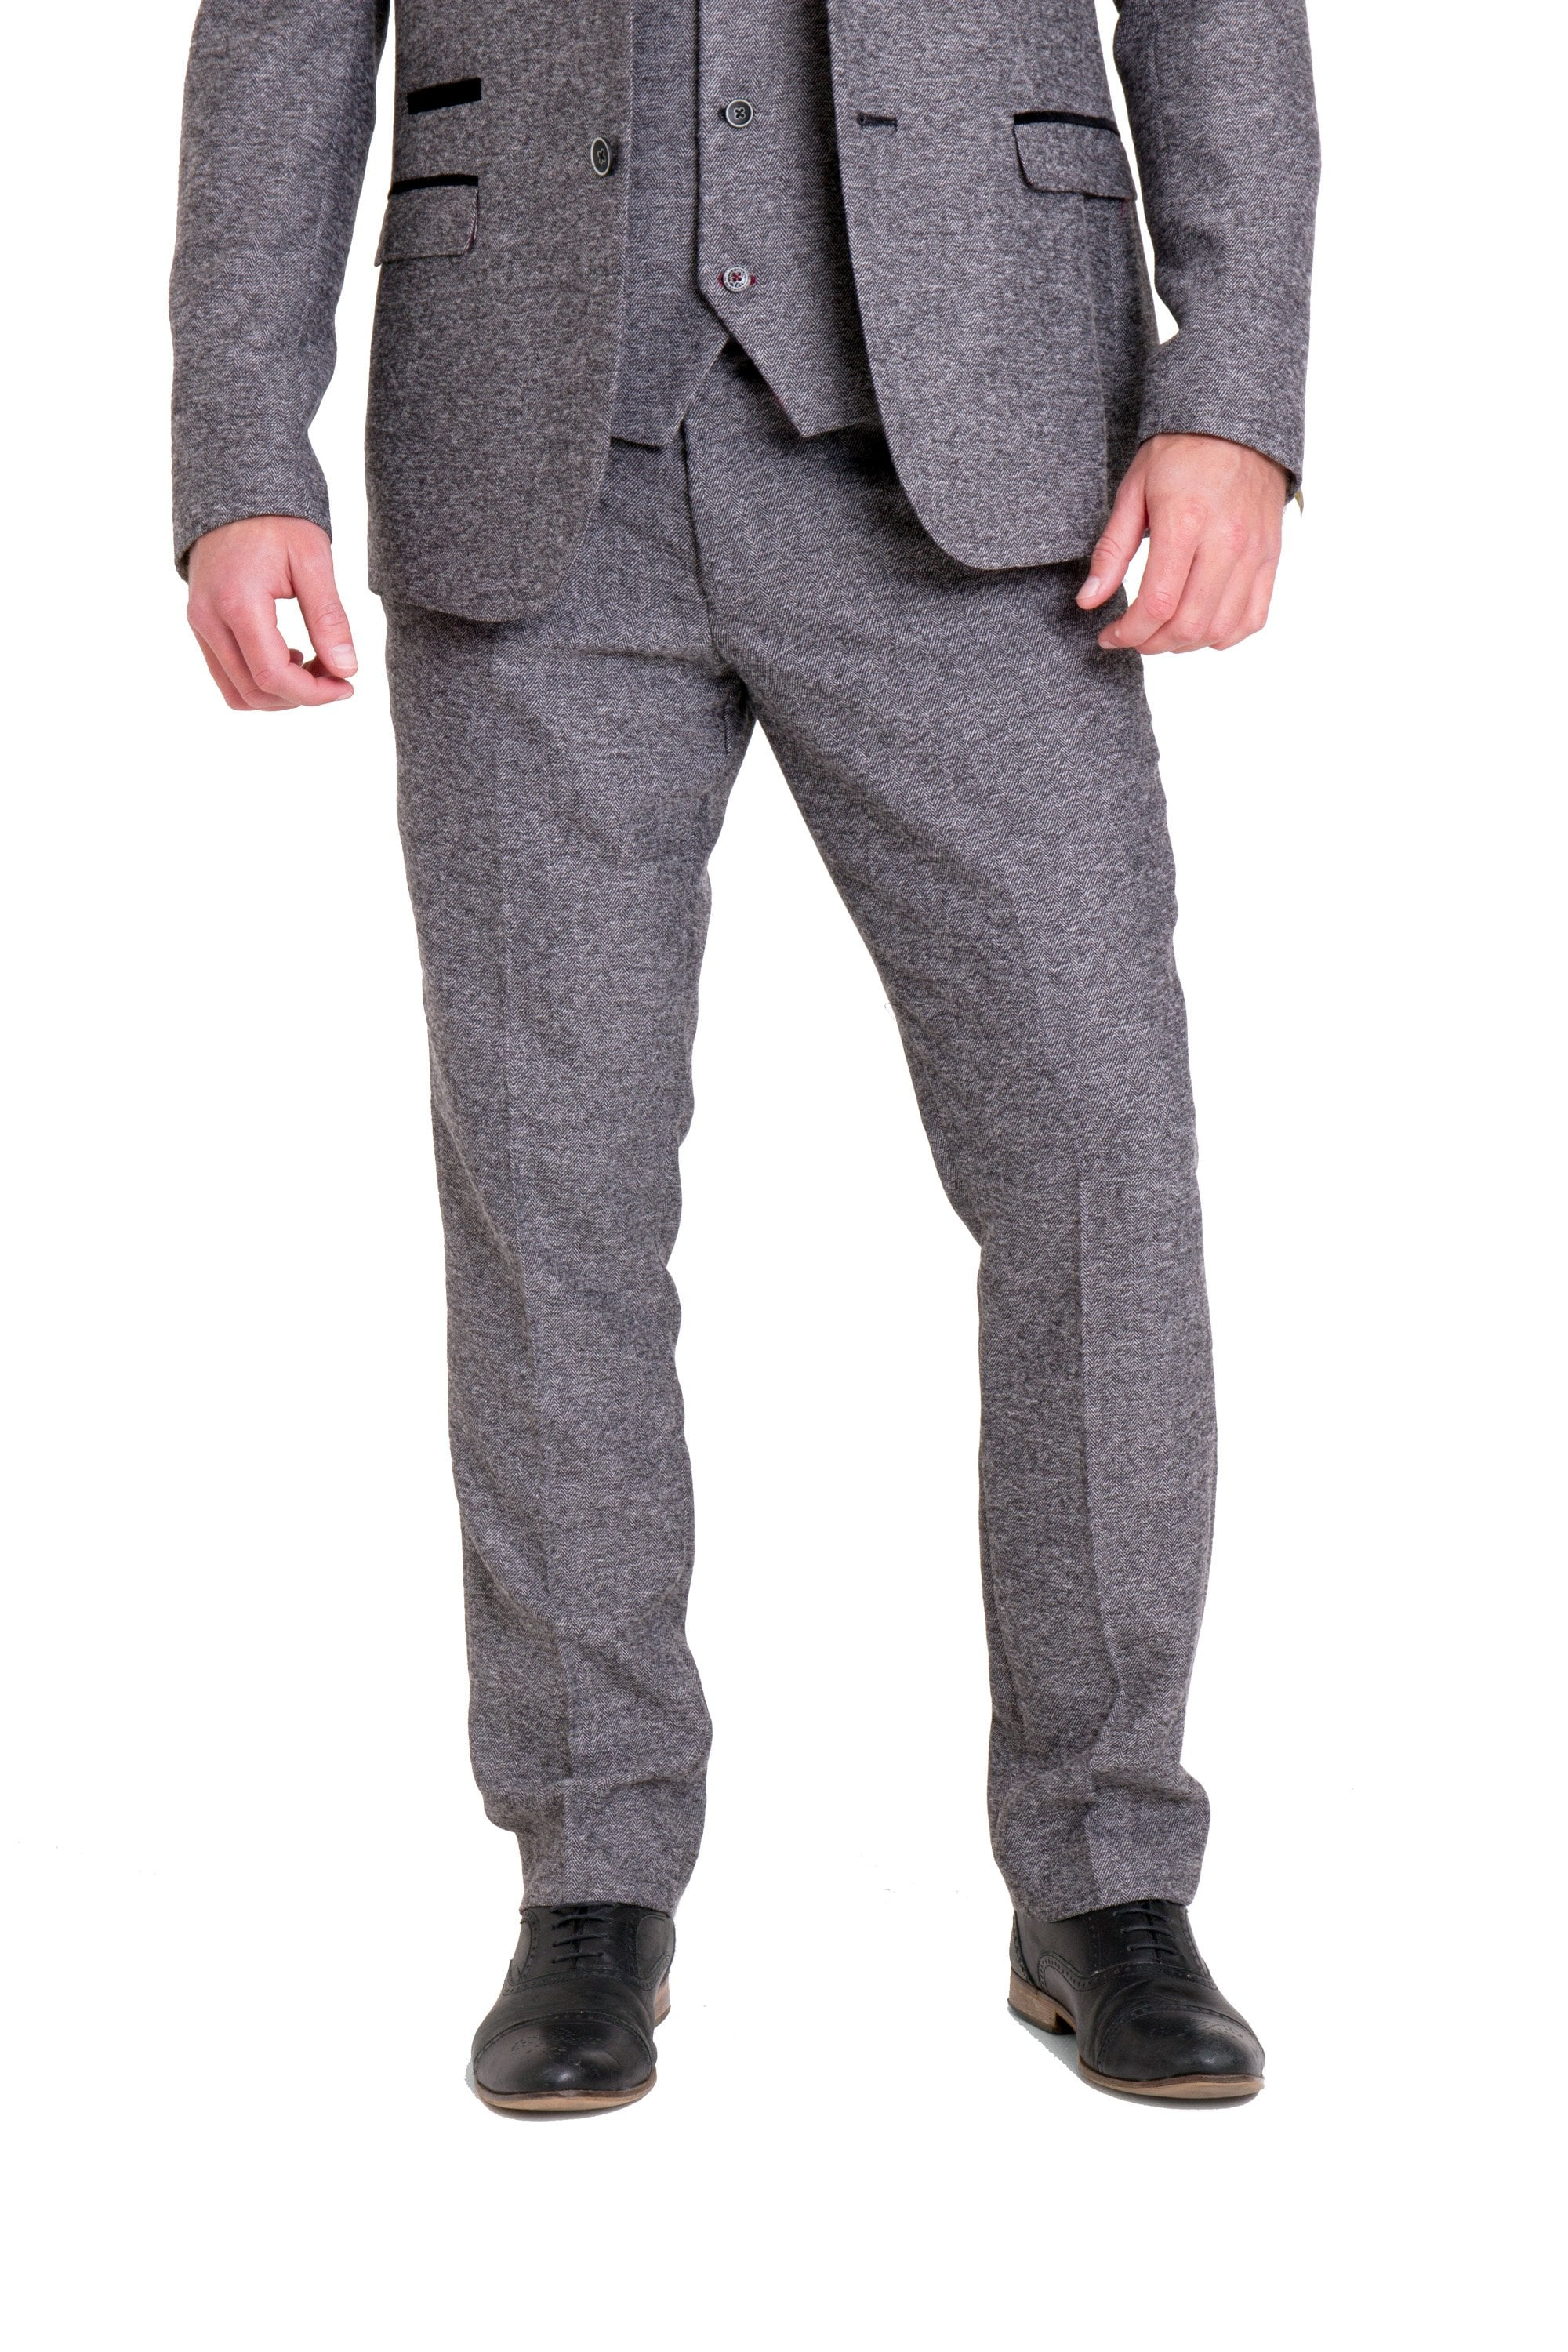 Victor Grey Tweed Suit Blazer With Velvet Contrast Three Piece